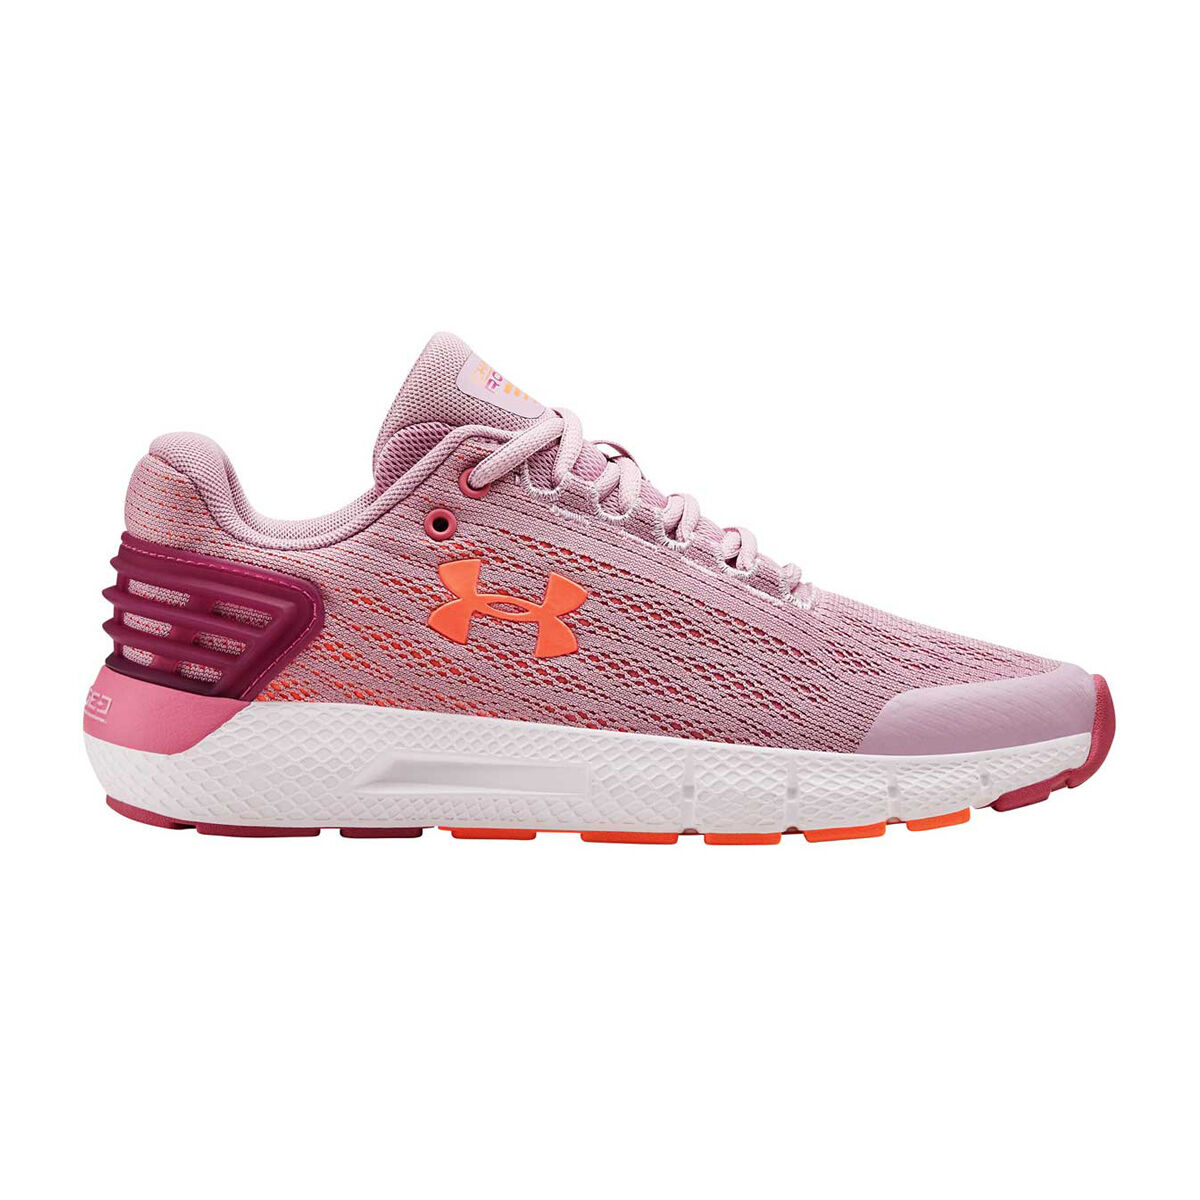 Under Armour Charged Rogue Kids Running